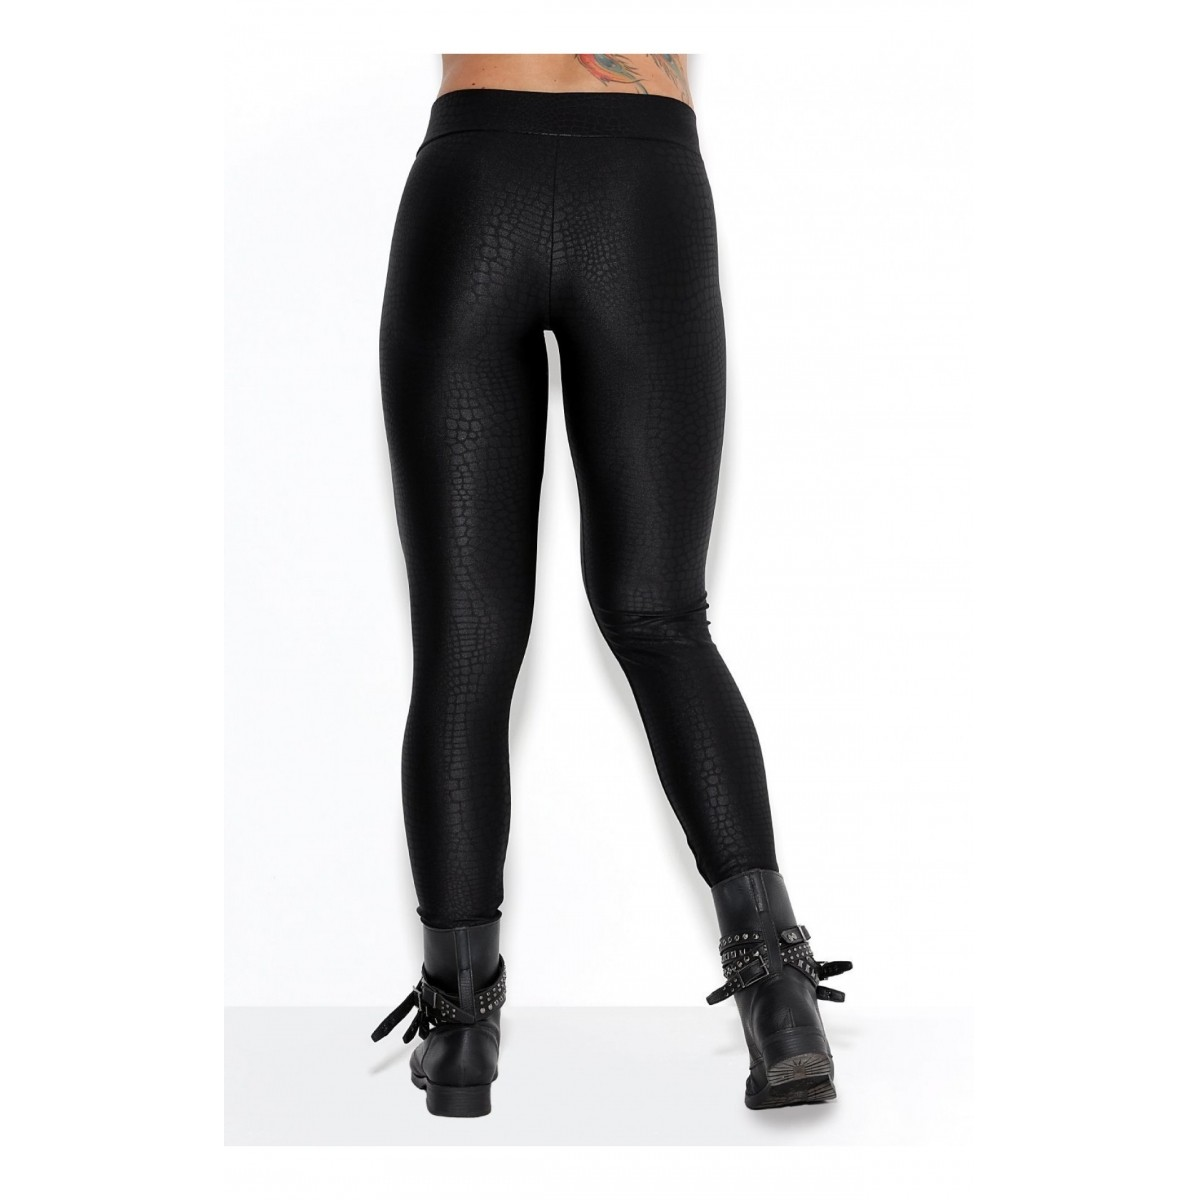 Legging croco black - Rock Code